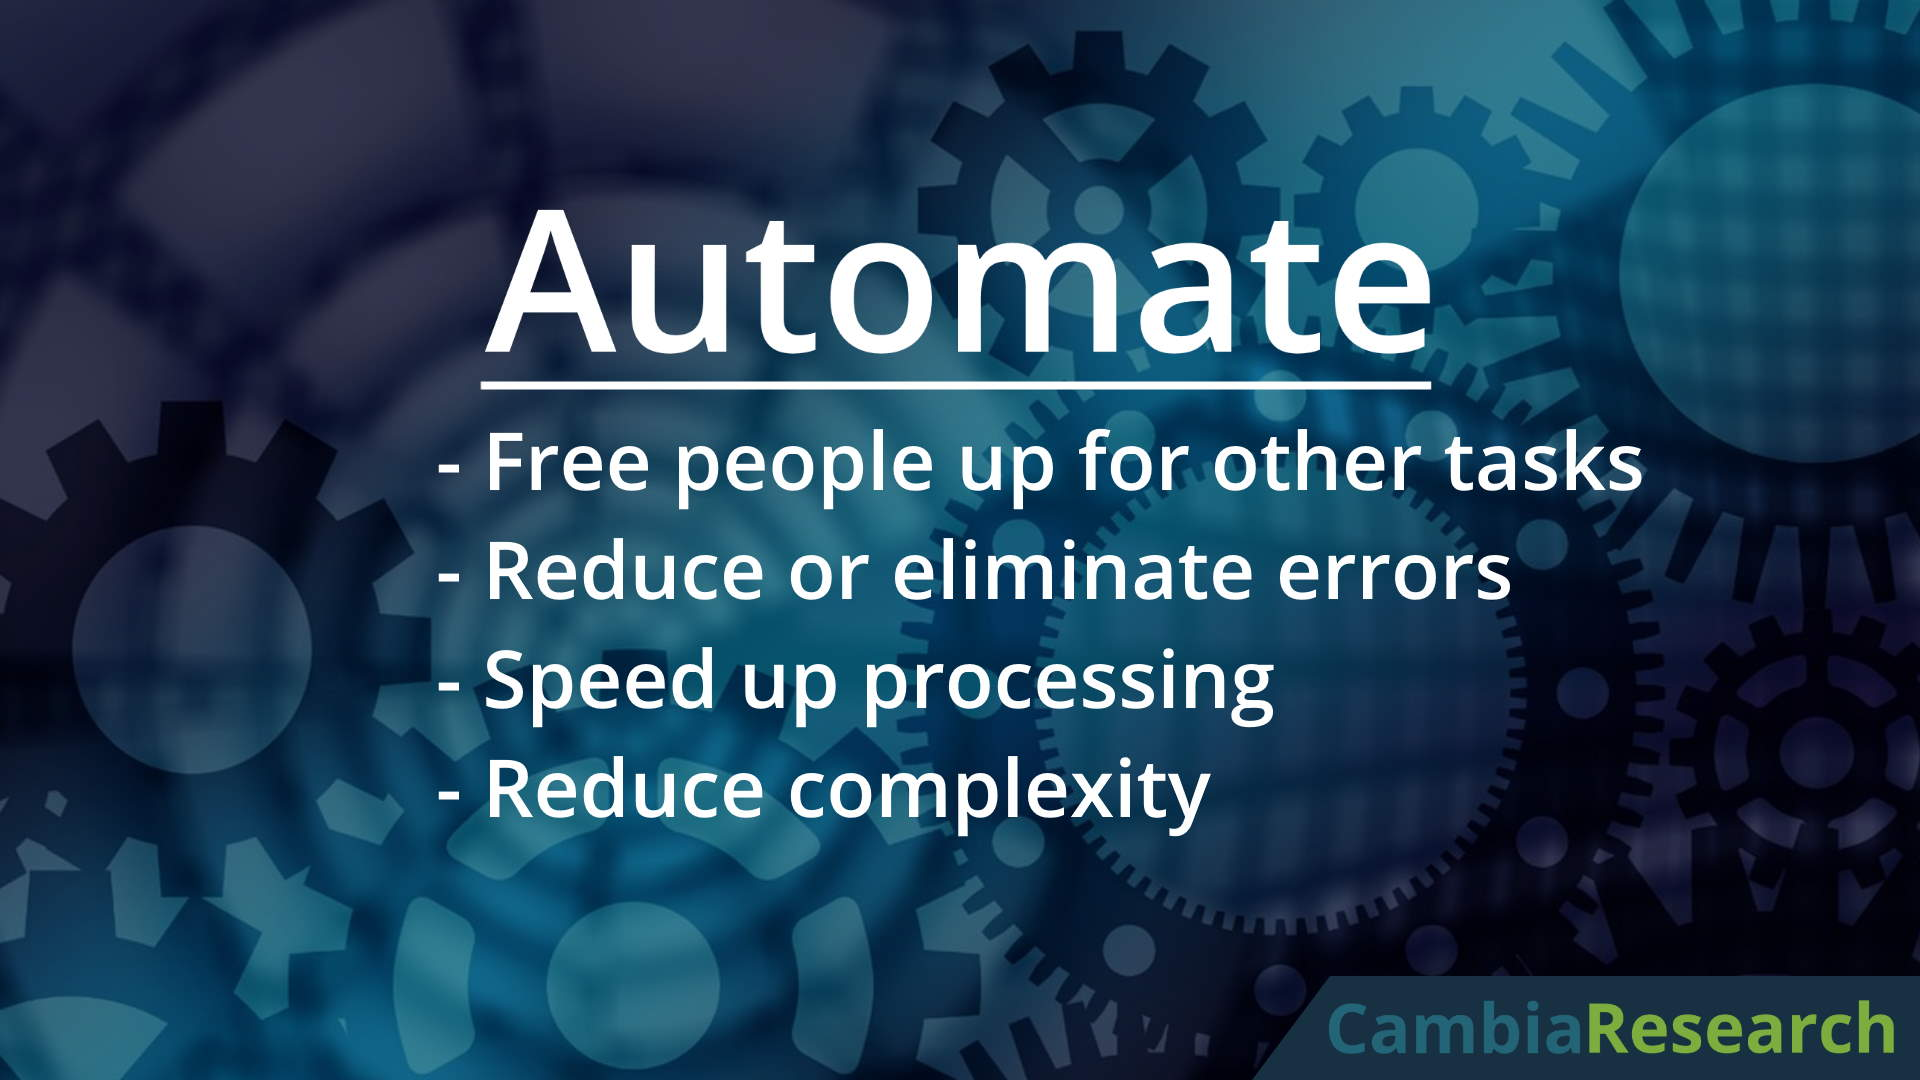 Automate your business processes with custom software.